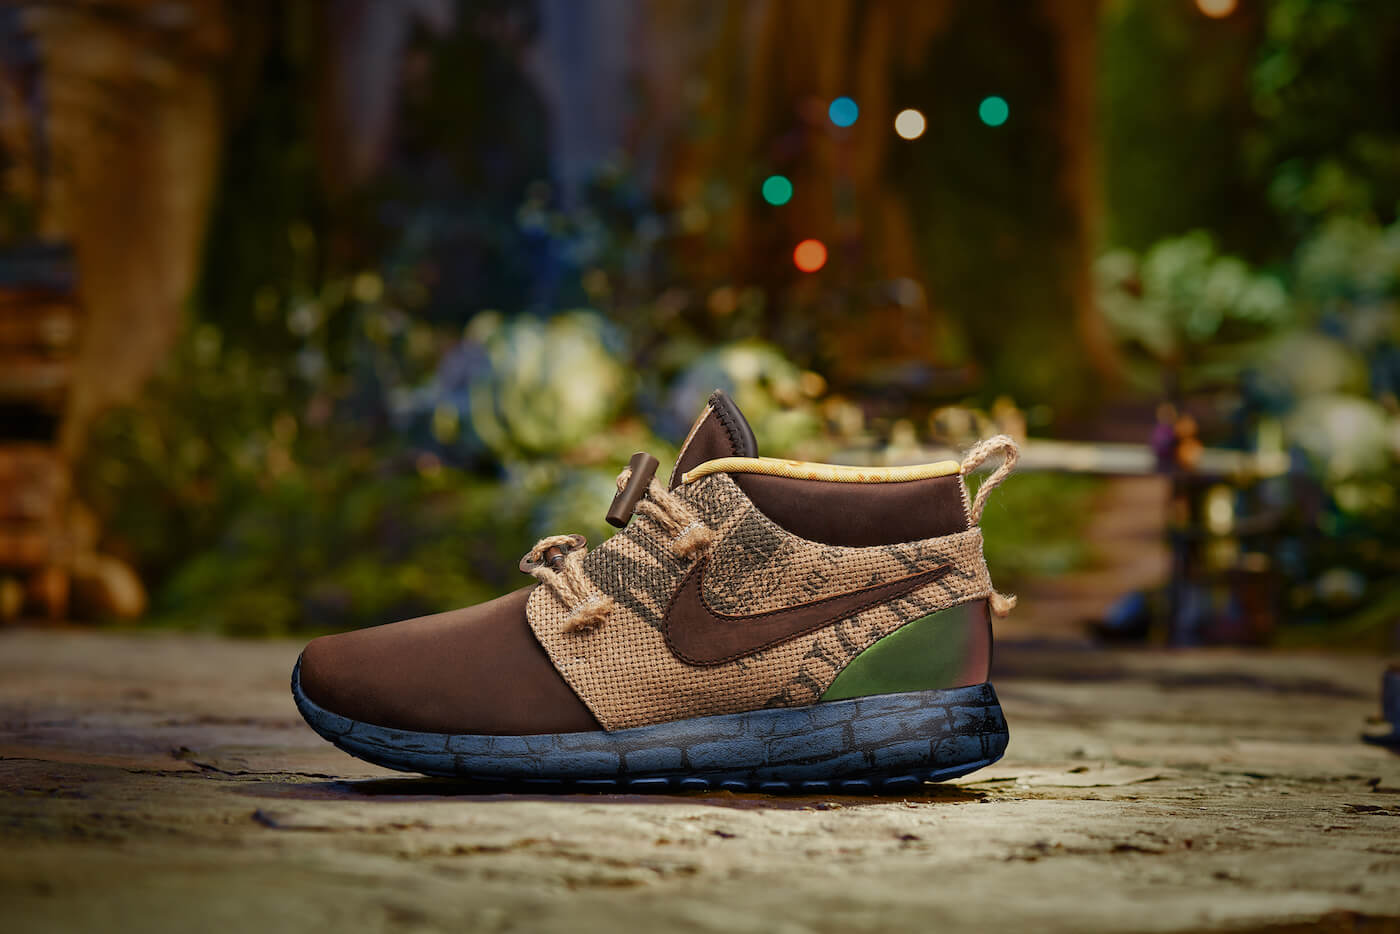 Nike shoes laika the boxtrolls 7